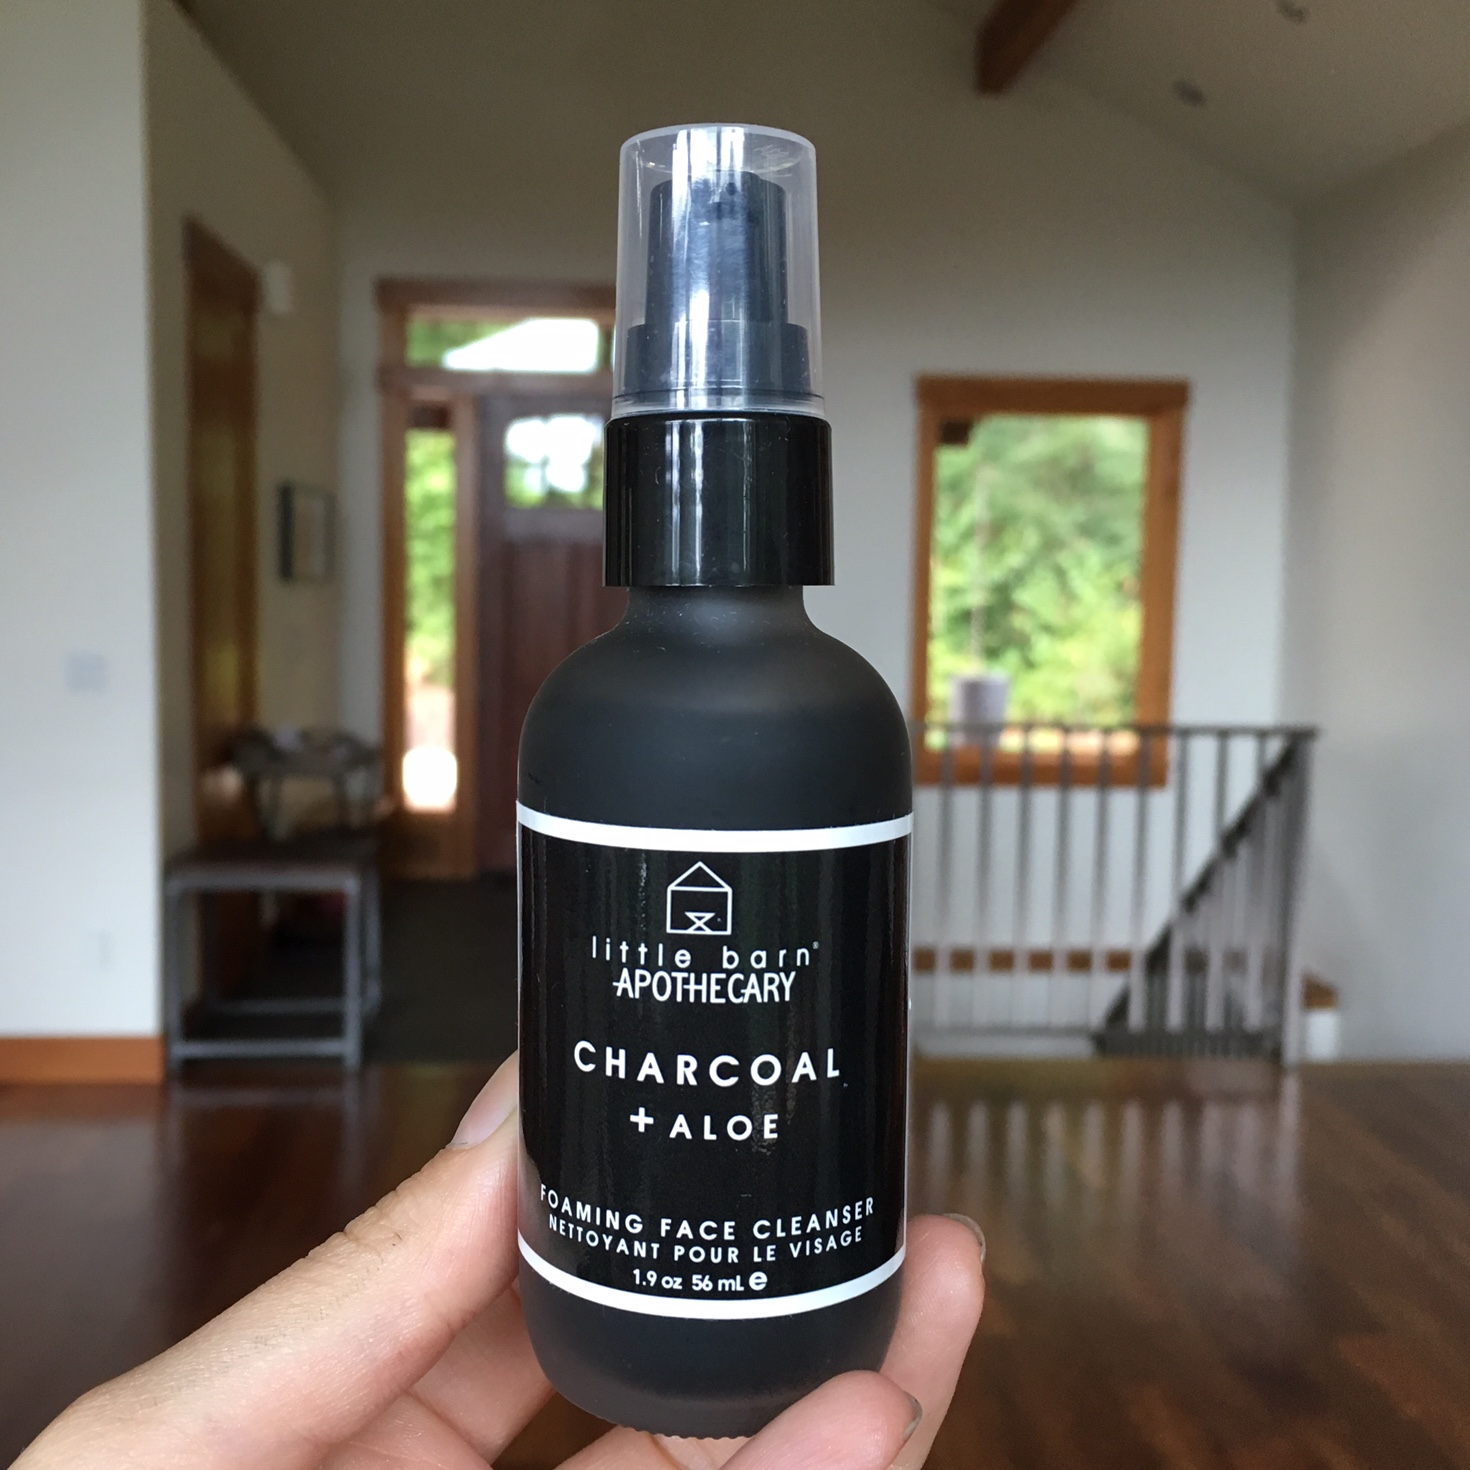 little-barn-apothecary-charcoal-aloe-cleanser